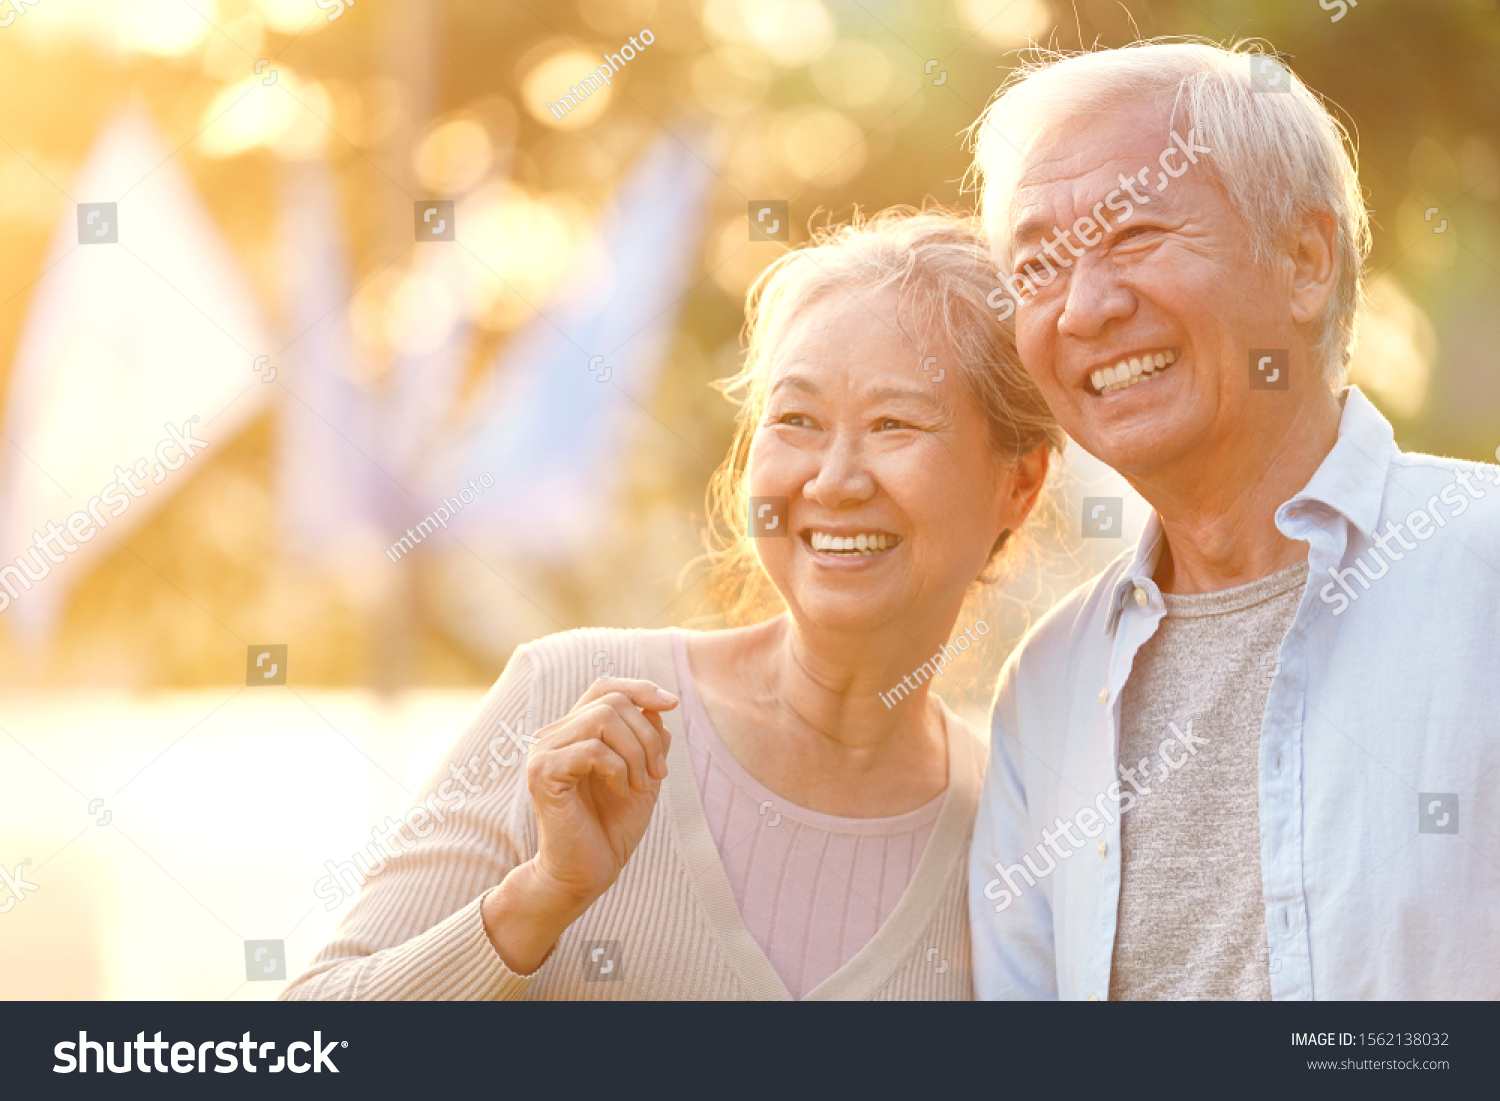 senior asian couple enjoying good time outdoors in park at dusk, happy and smiling #1562138032